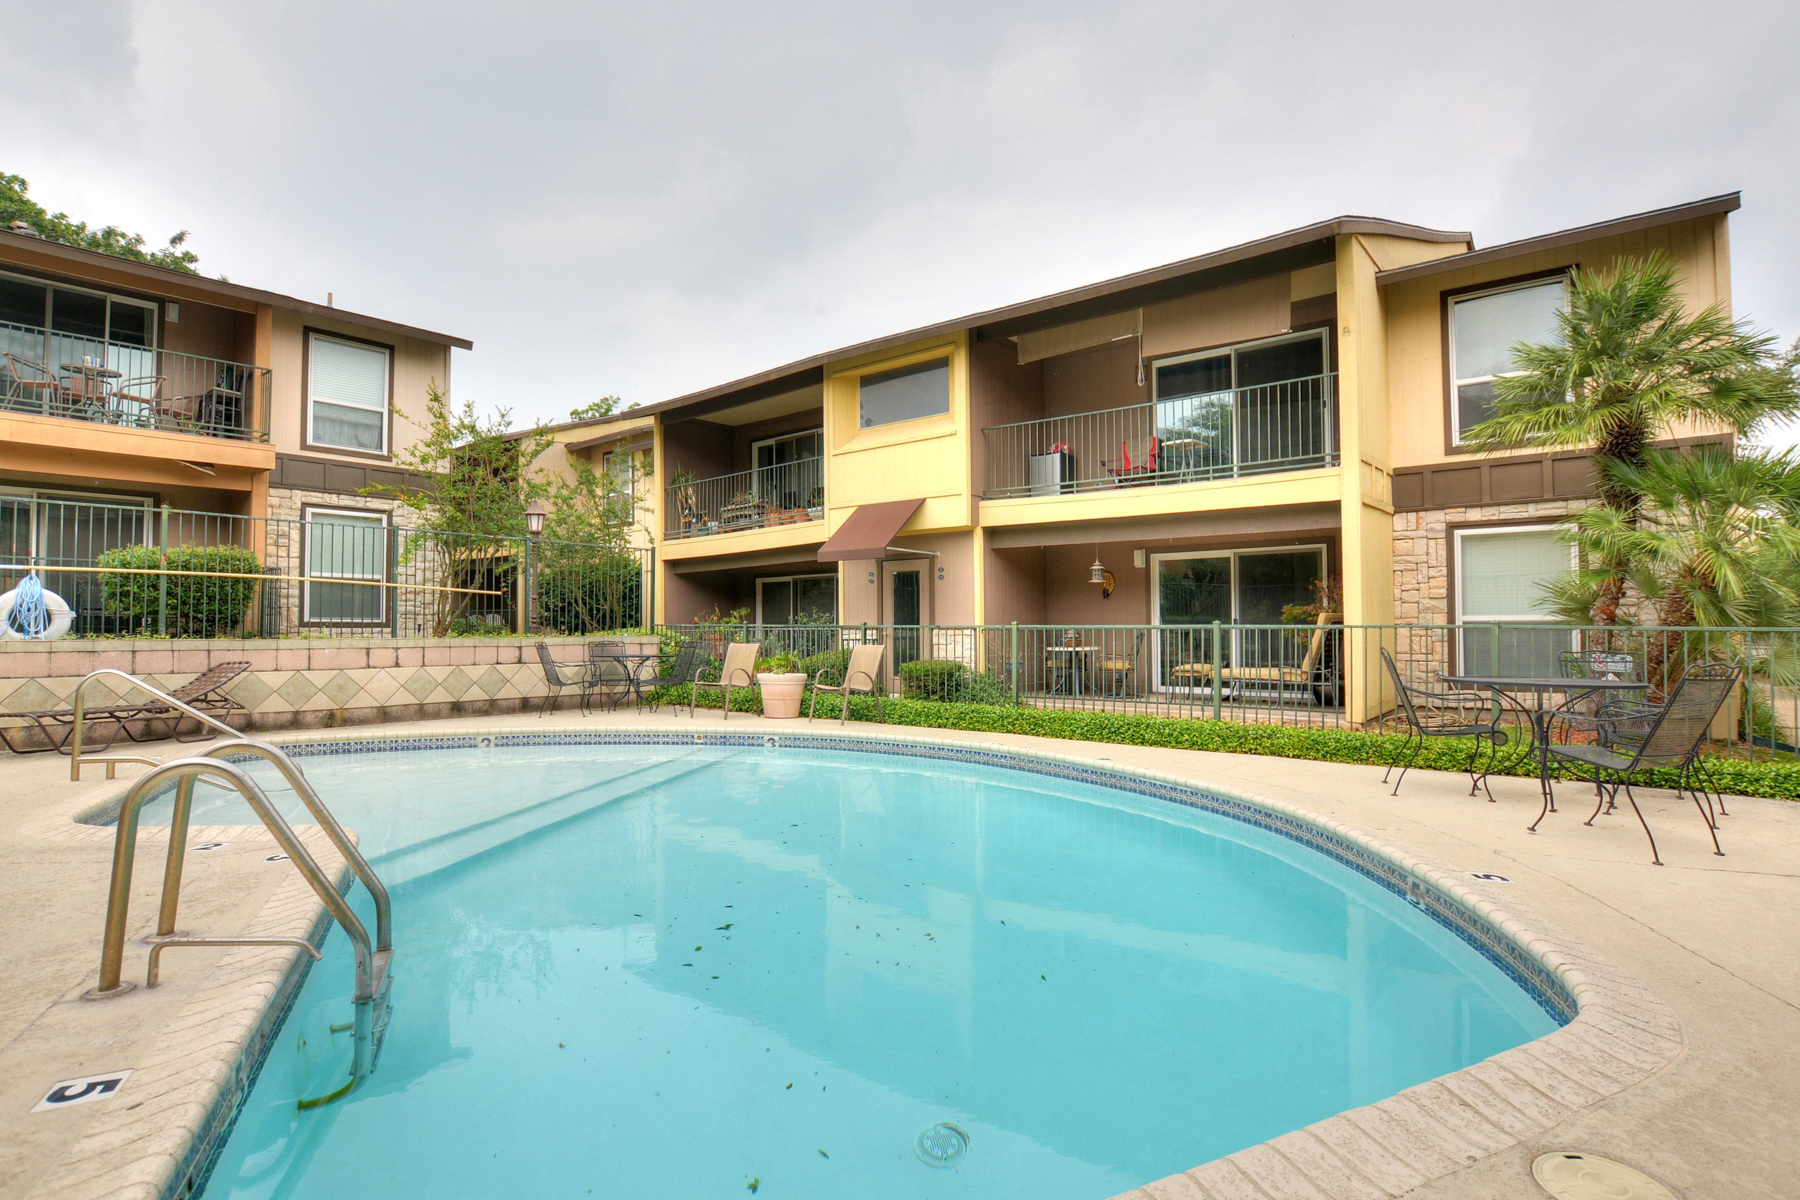 Additional photo for property listing at Fantastic Condo in Villa Dijon 100 Lorenz Rd 301 San Antonio, Texas 78209 Estados Unidos